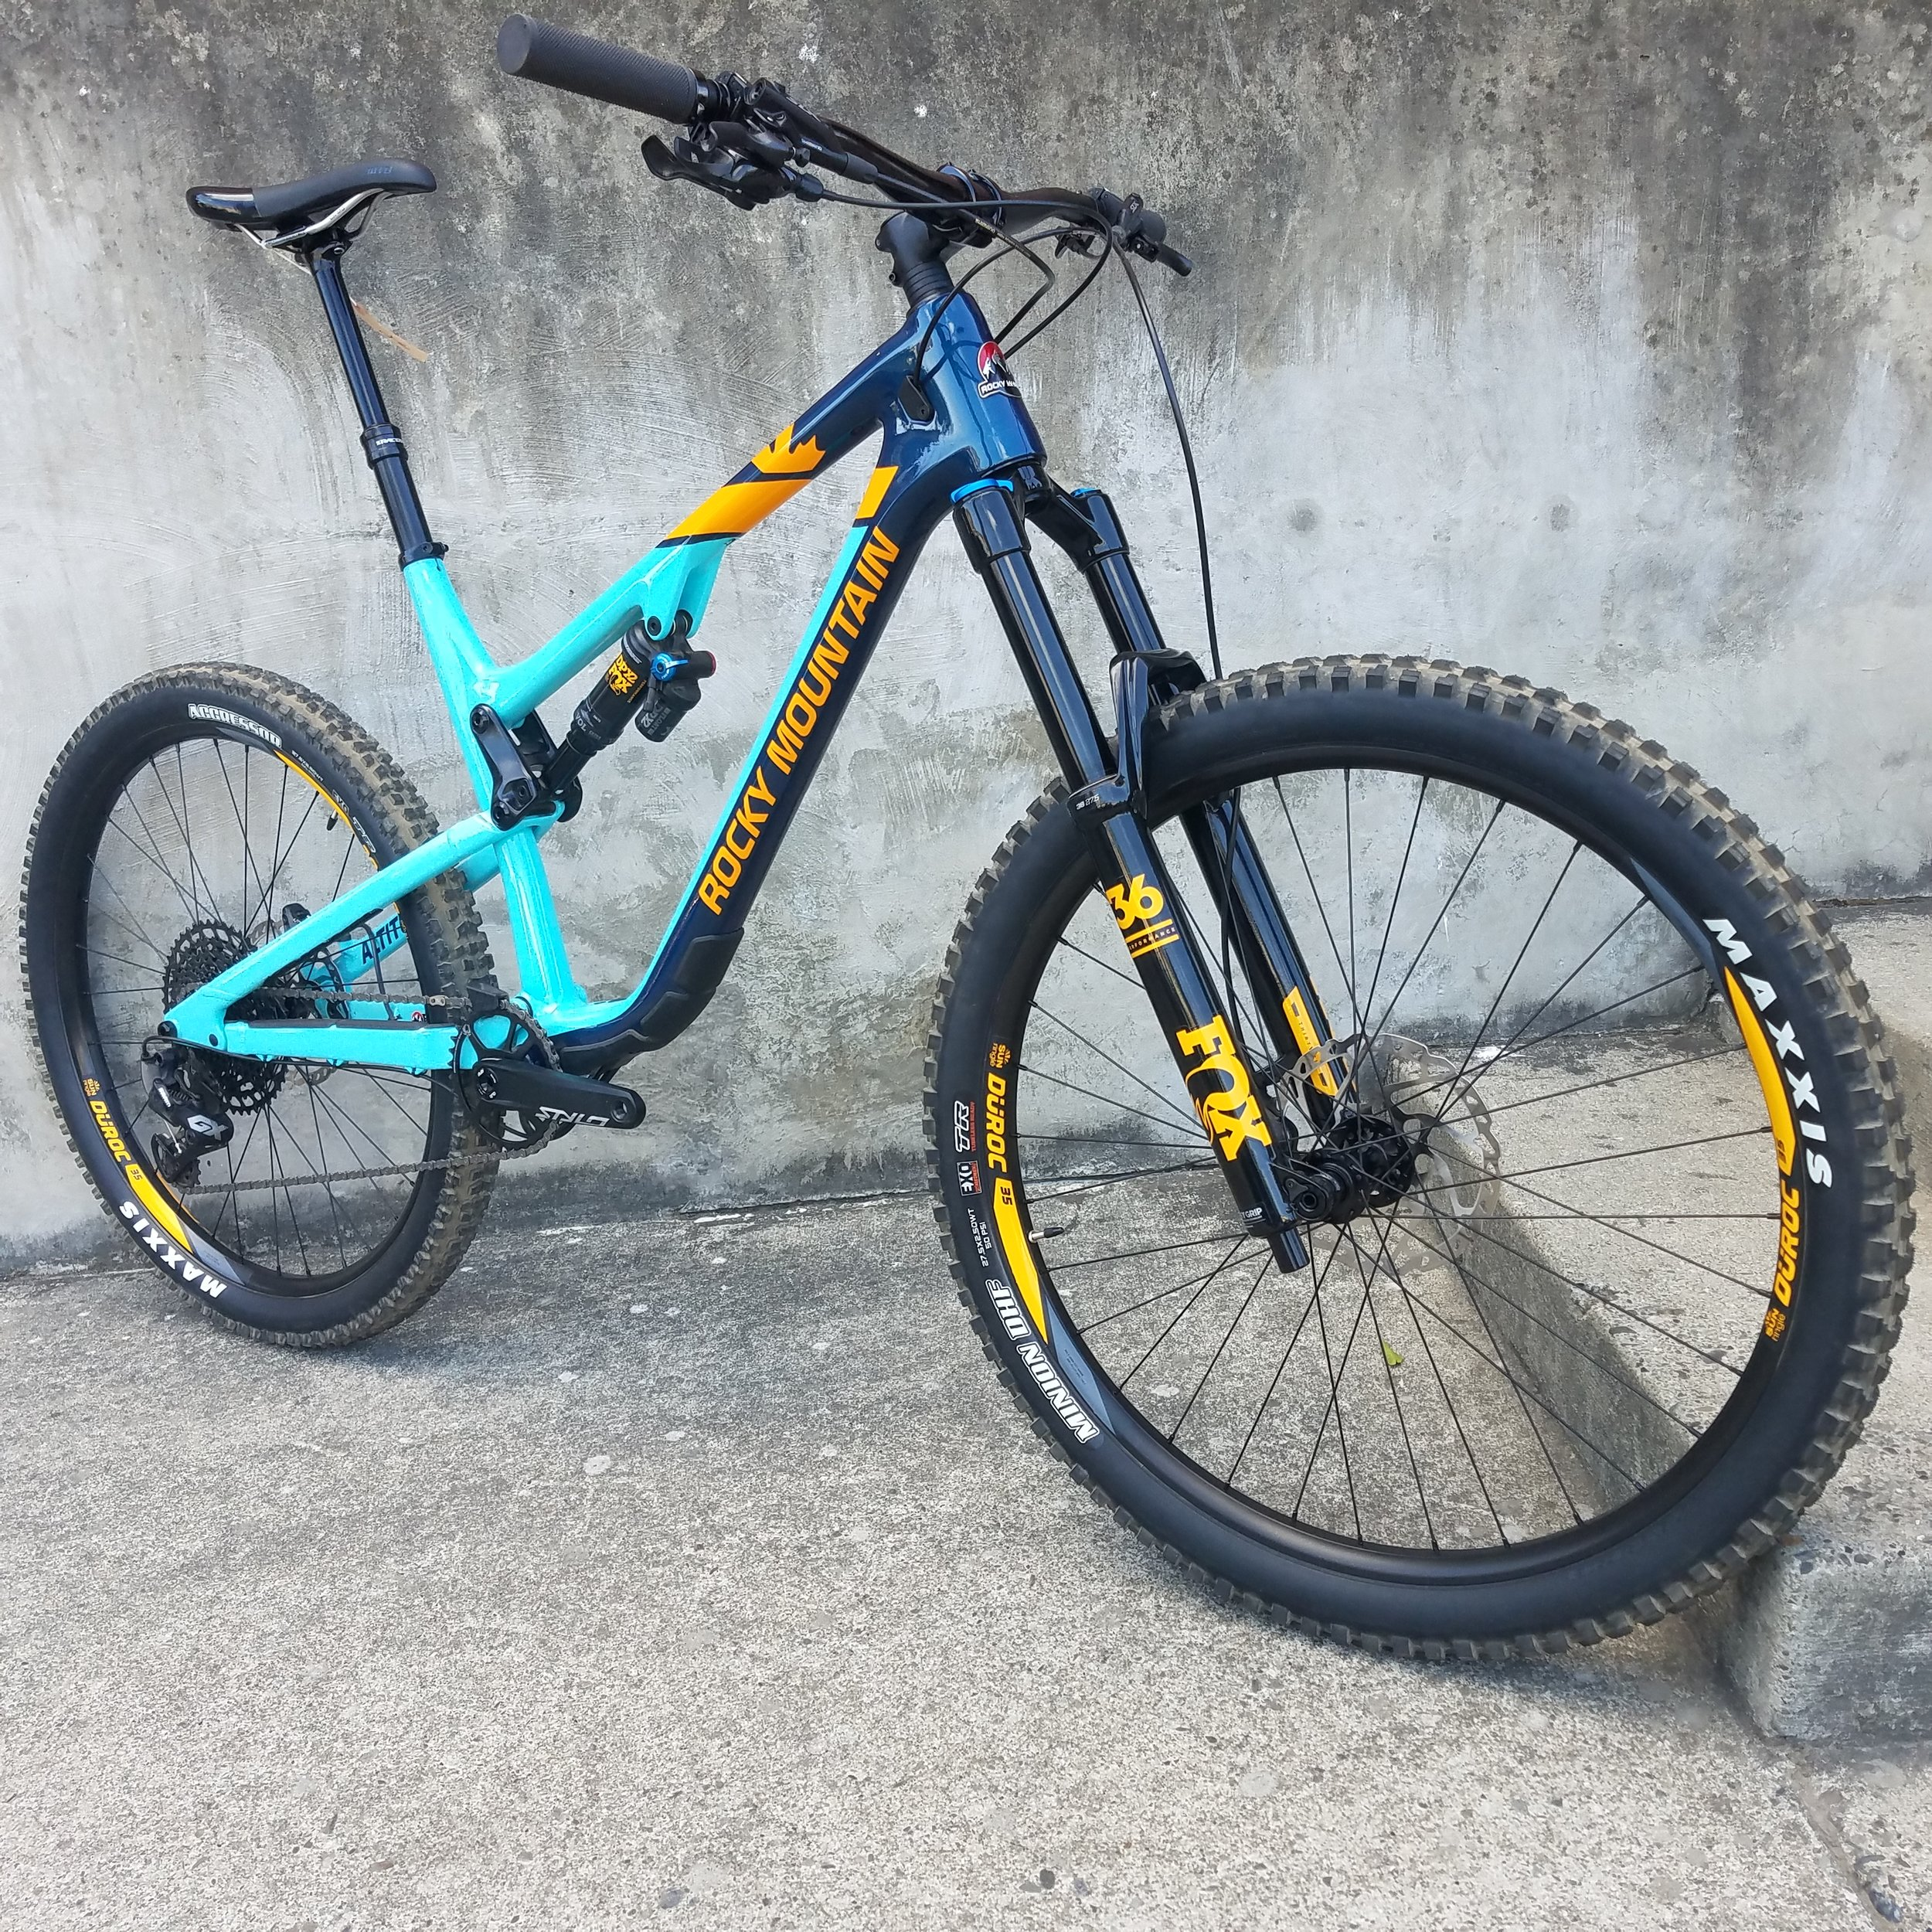 2019 Rocky Mountain Altitude C50 - $4,400Size Available : LargeWe are happy to order you any size or model you need.